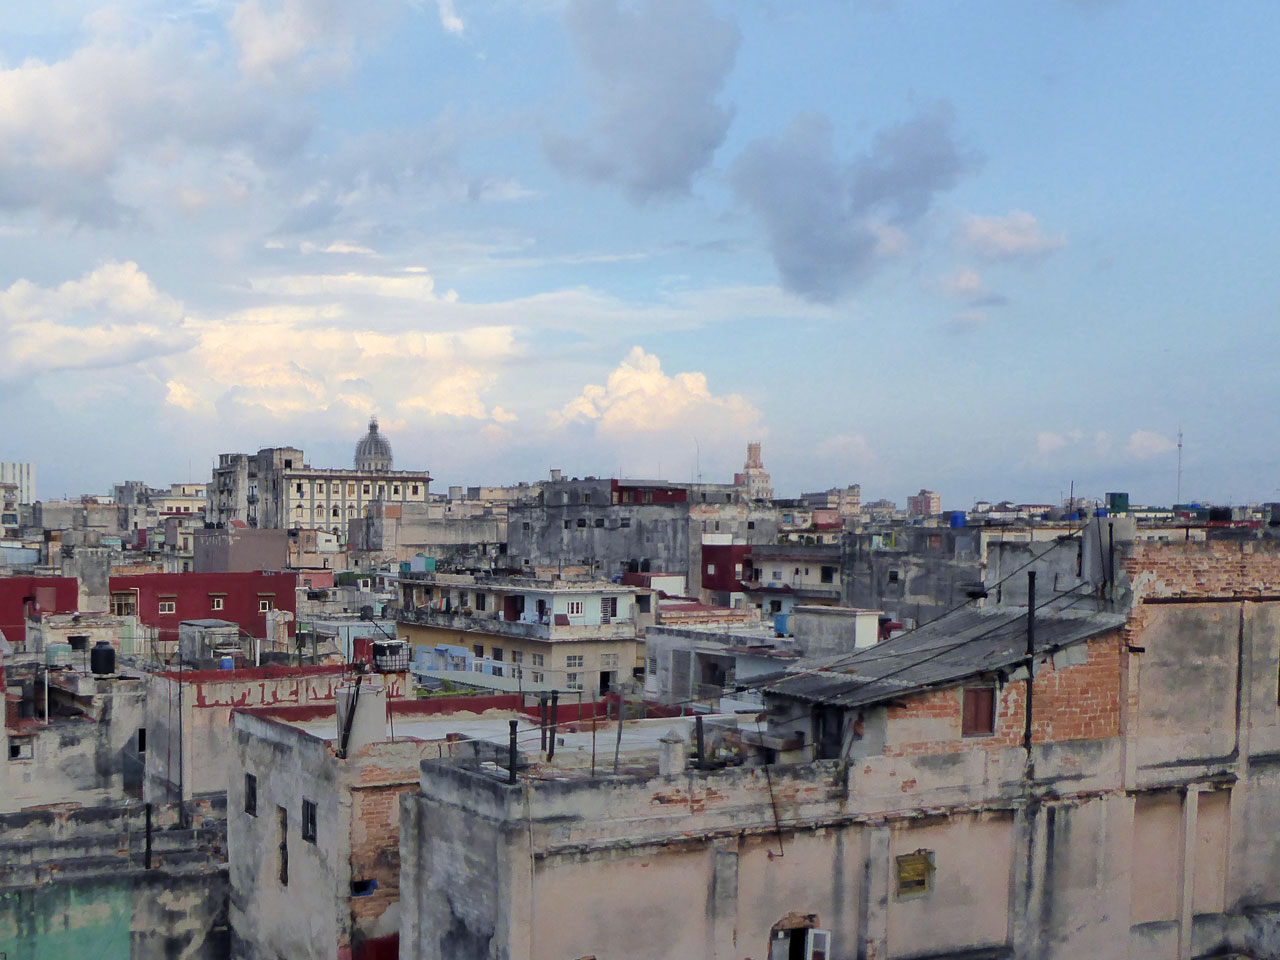 The view from La Guarida, Havana